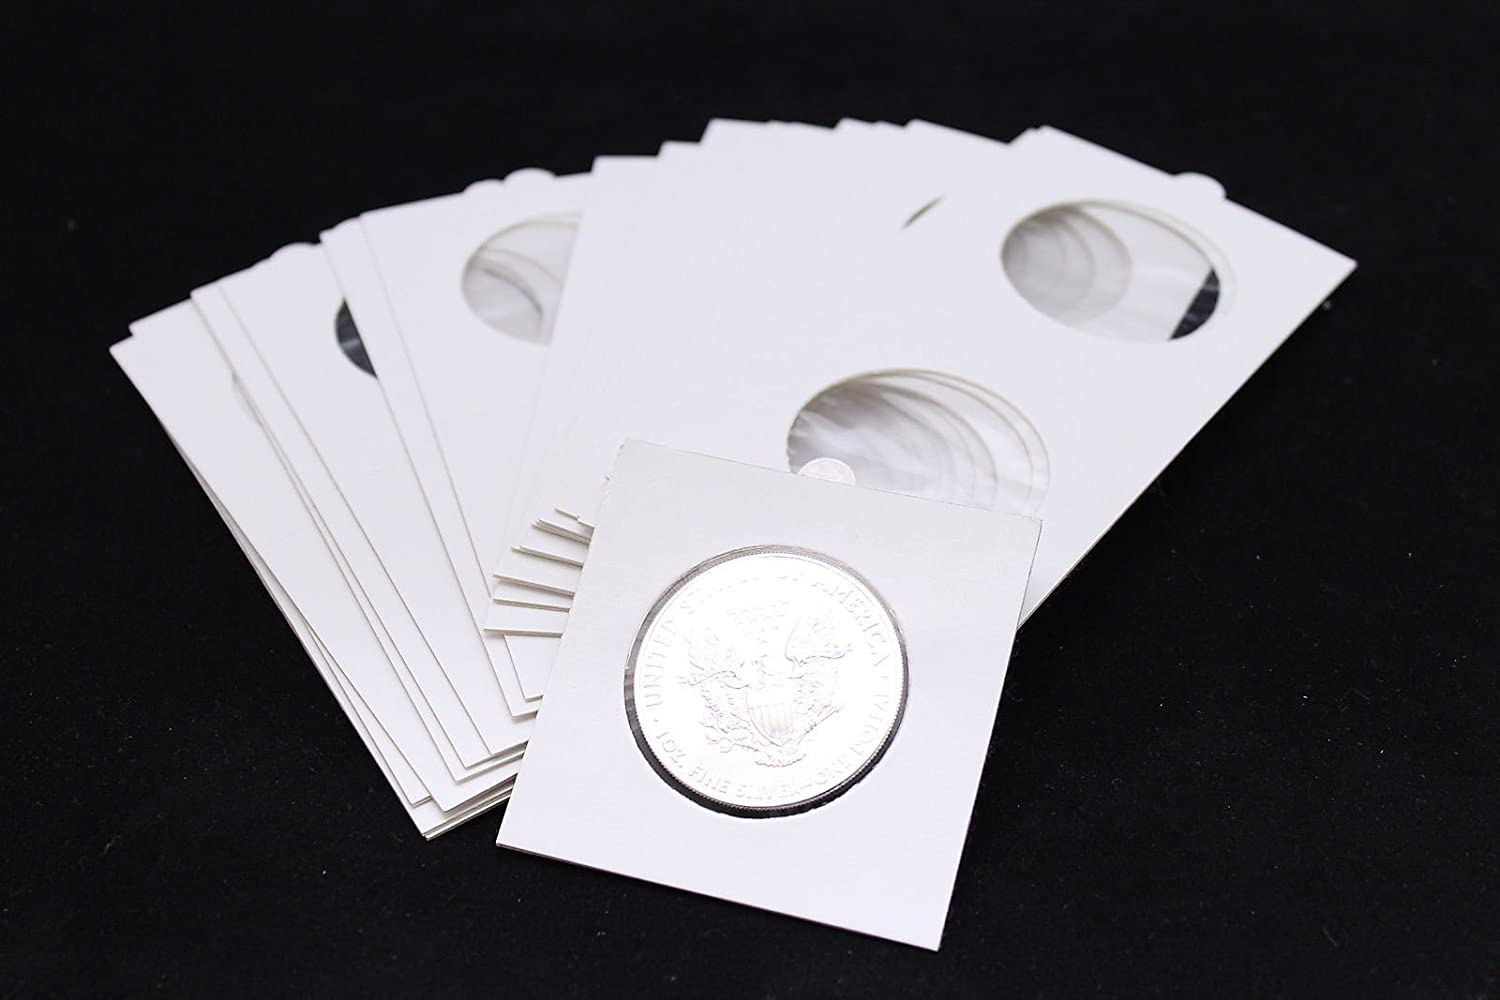 100 BCW 2 x 2 Cardboard Coin Flips Large Silver Dollar 2x2 paper holders